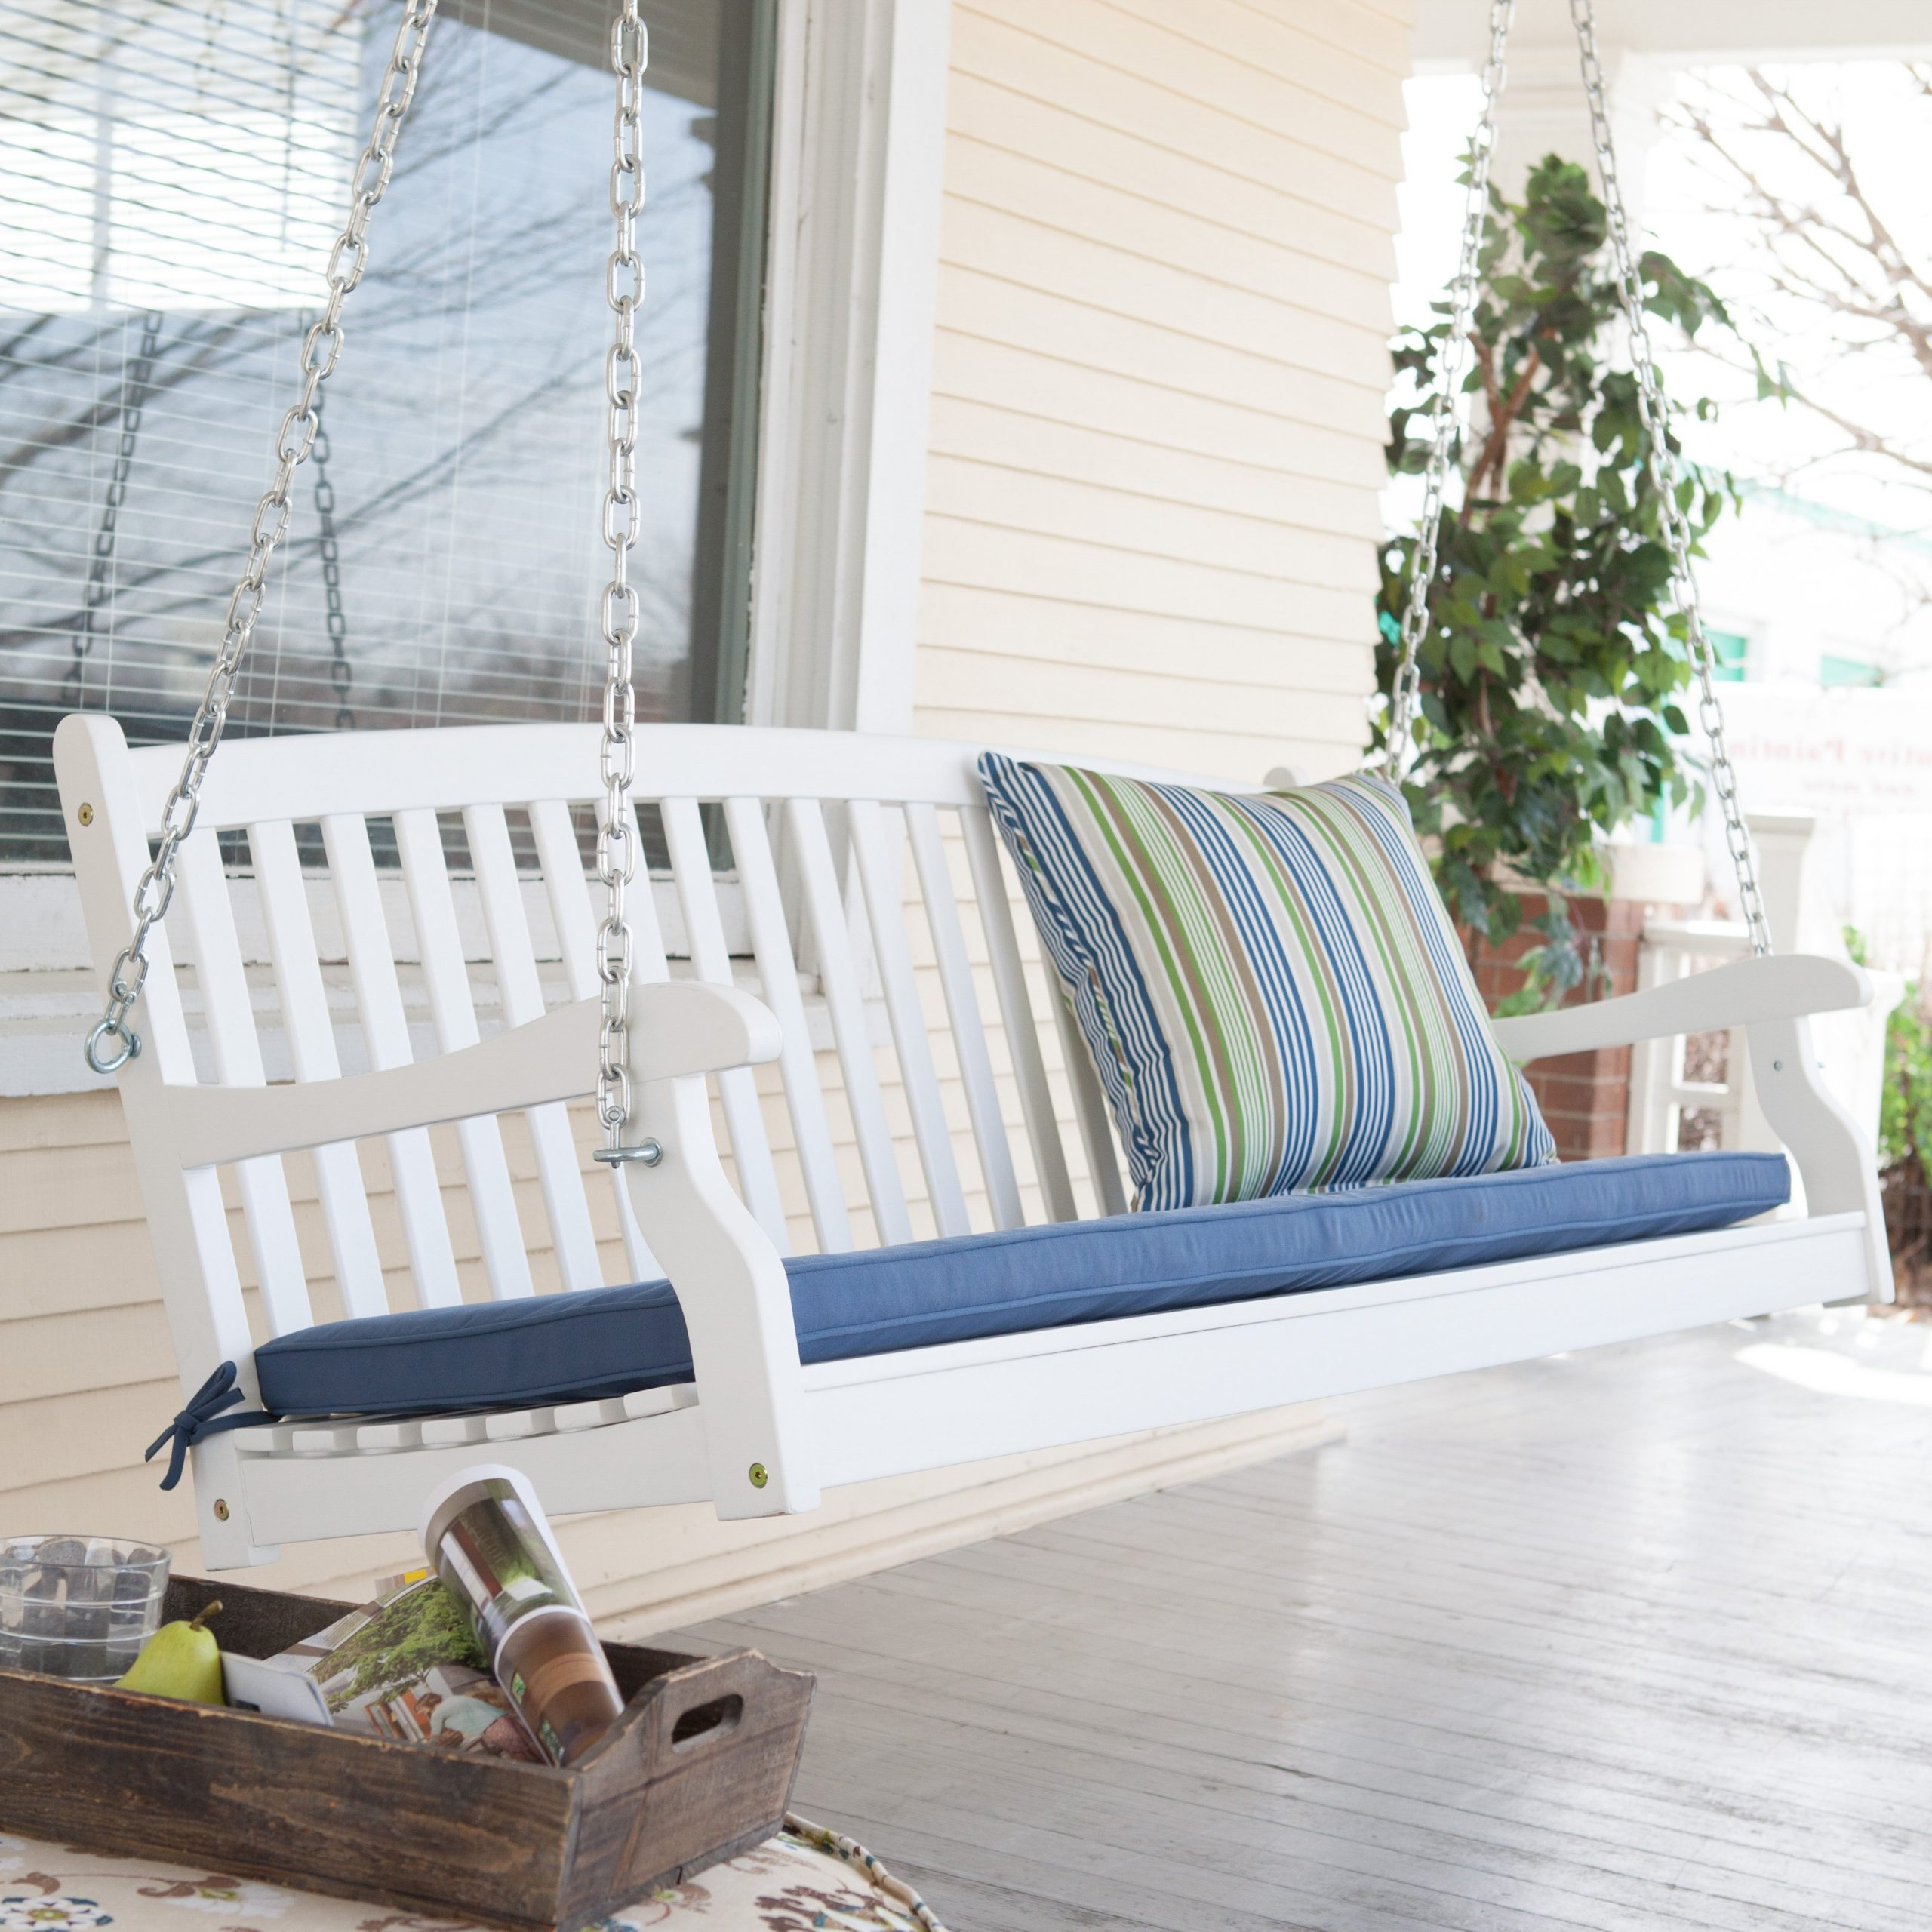 Popular Inspirations: Enjoy Your All Day With Cozy Wooden Porch Intended For Hardwood Hanging Porch Swings With Stand (View 21 of 30)